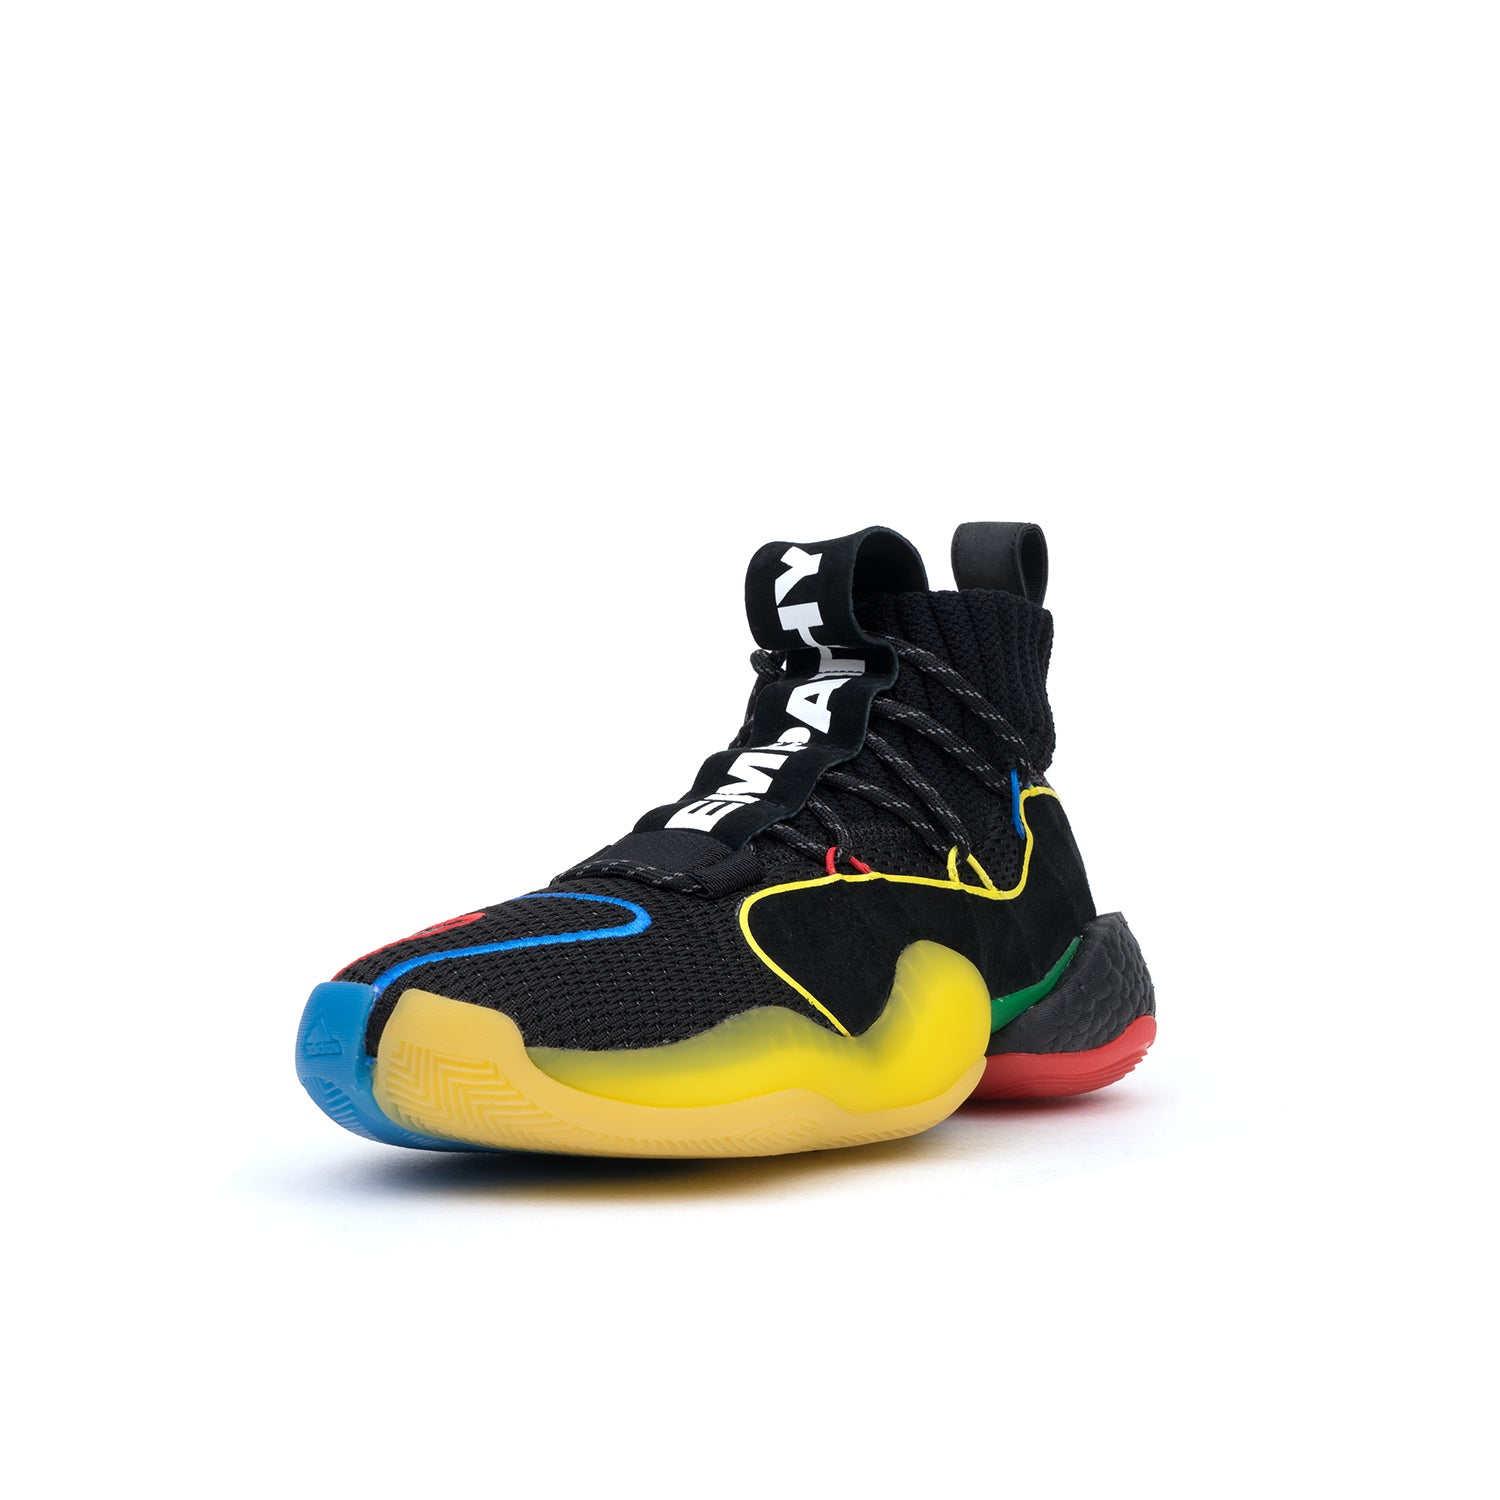 finest selection 53d01 6982b adidas Originals x Pharrell Williams Crazy BYW LVL X ...